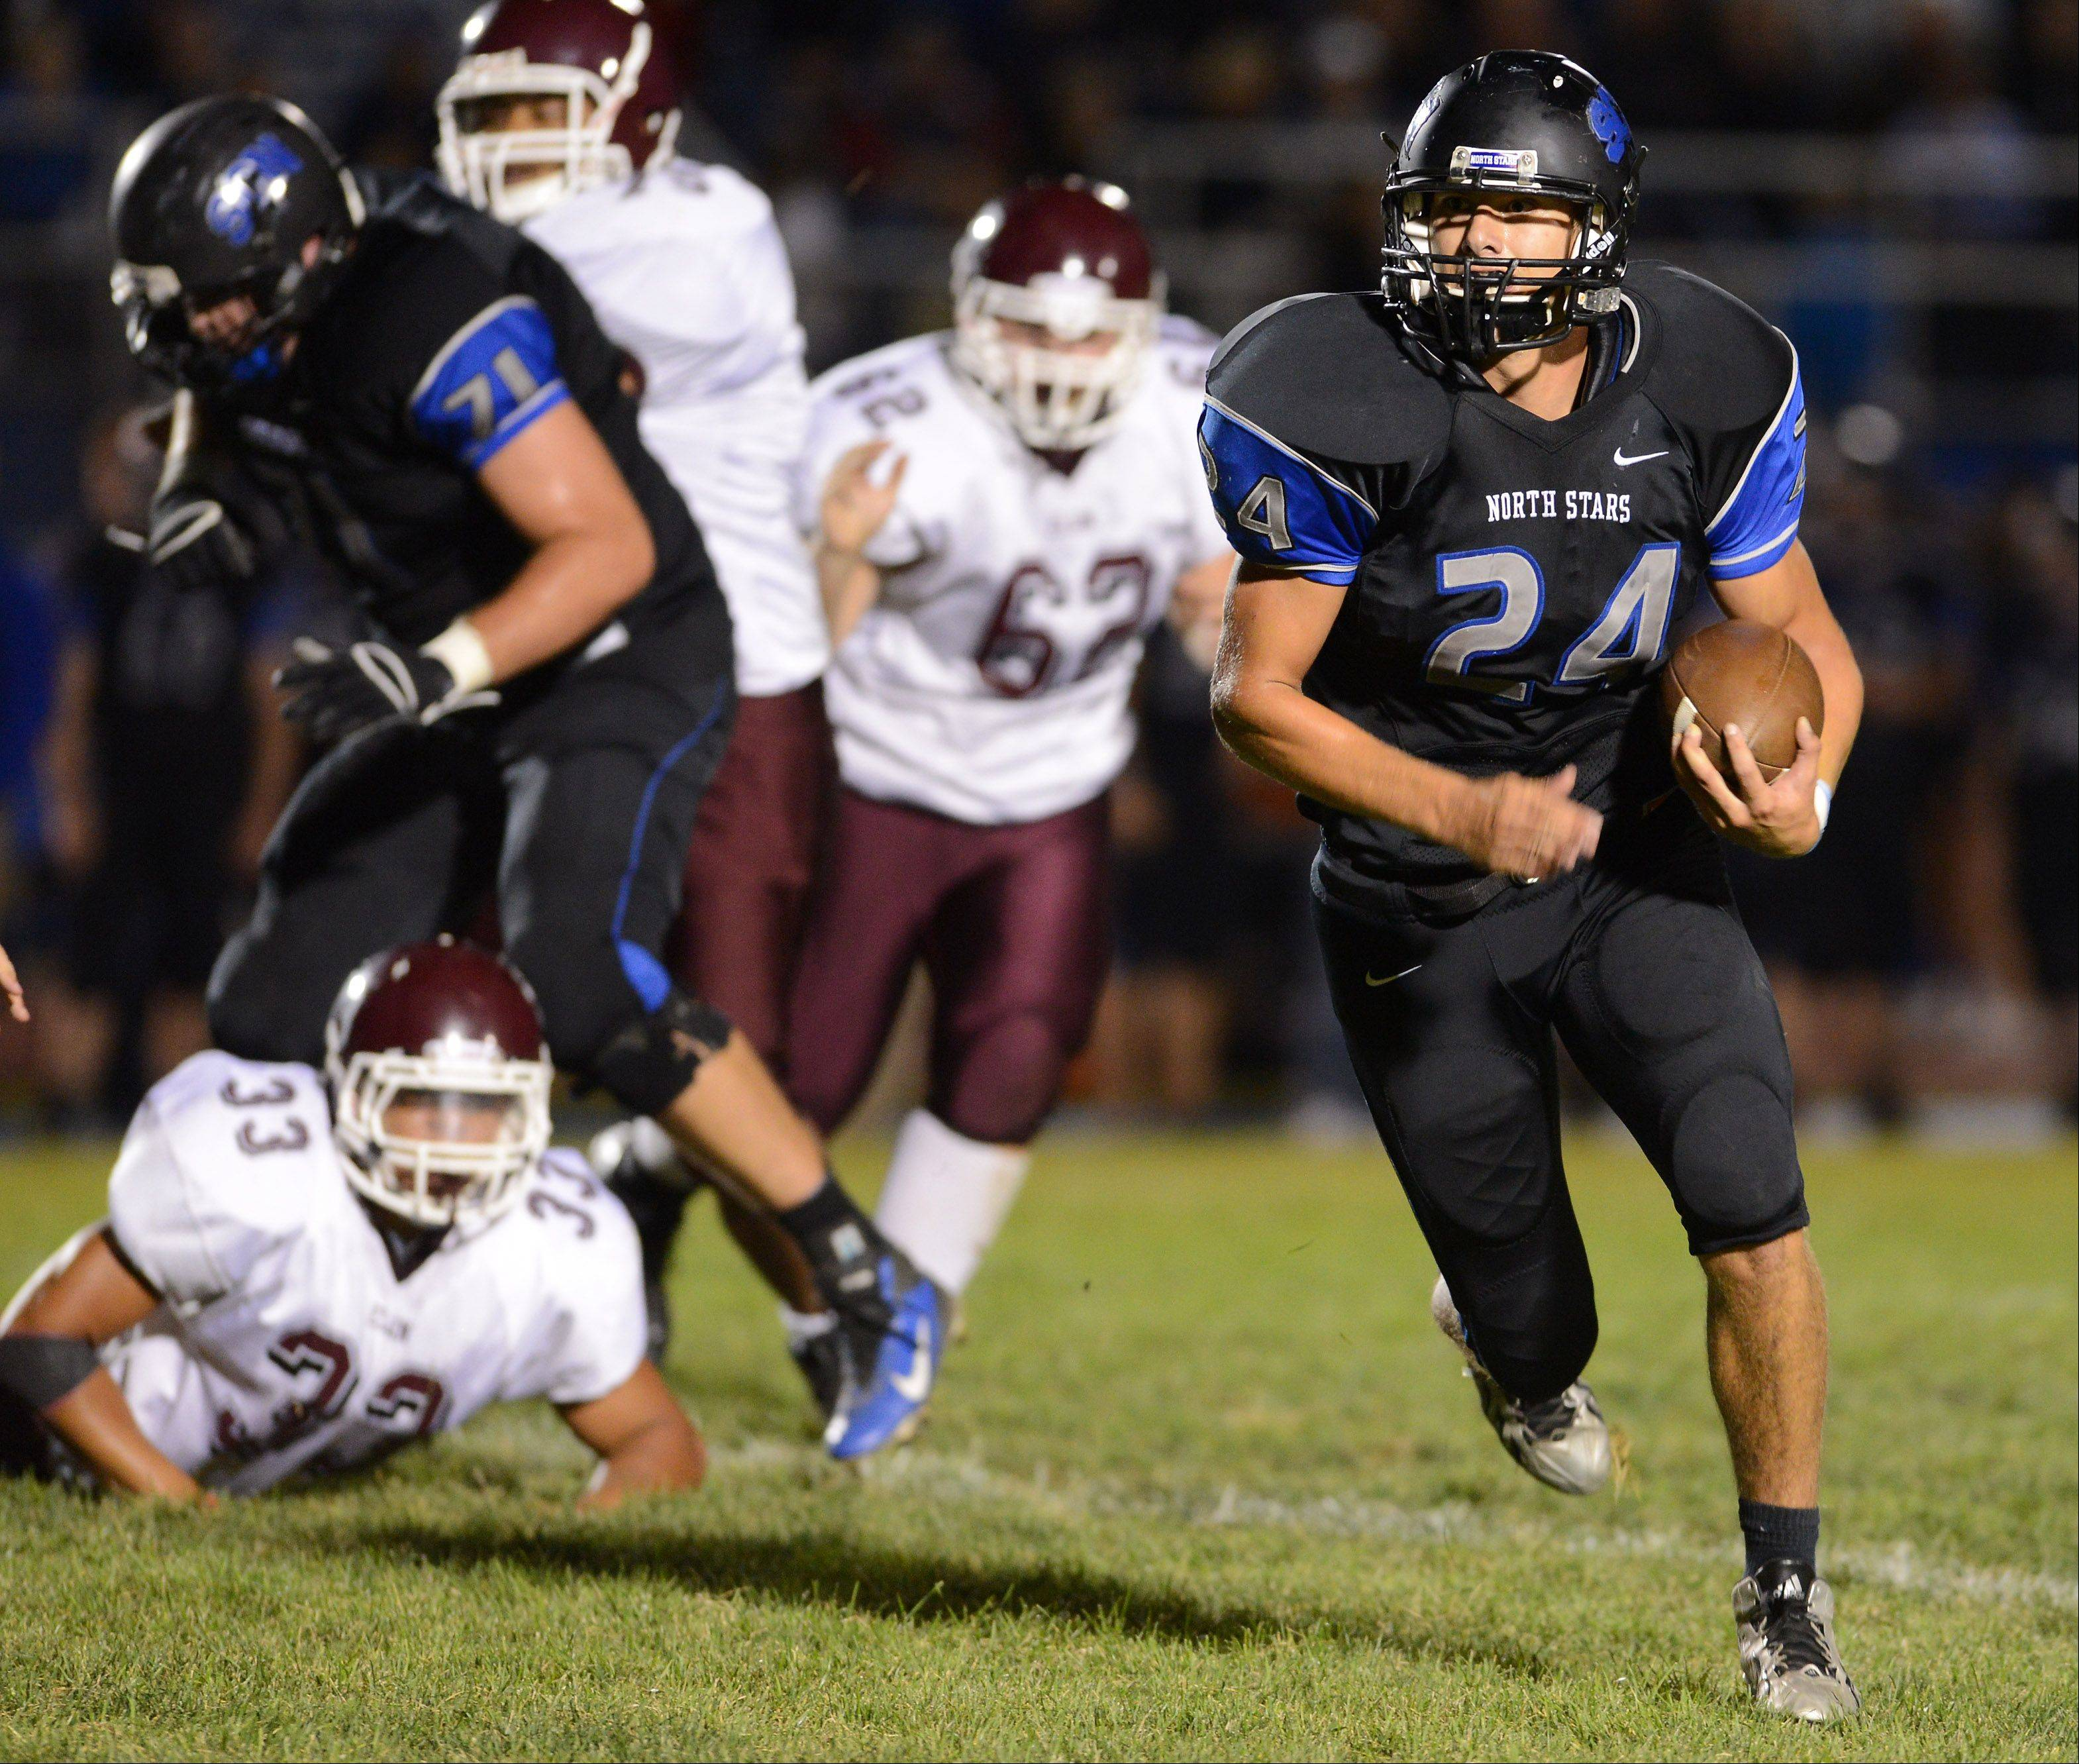 St. Charles North's Evan Kurtz (24) leaves several broken tackles in his wake en route to a big gain against Elgin during Friday's game in St. Charles.